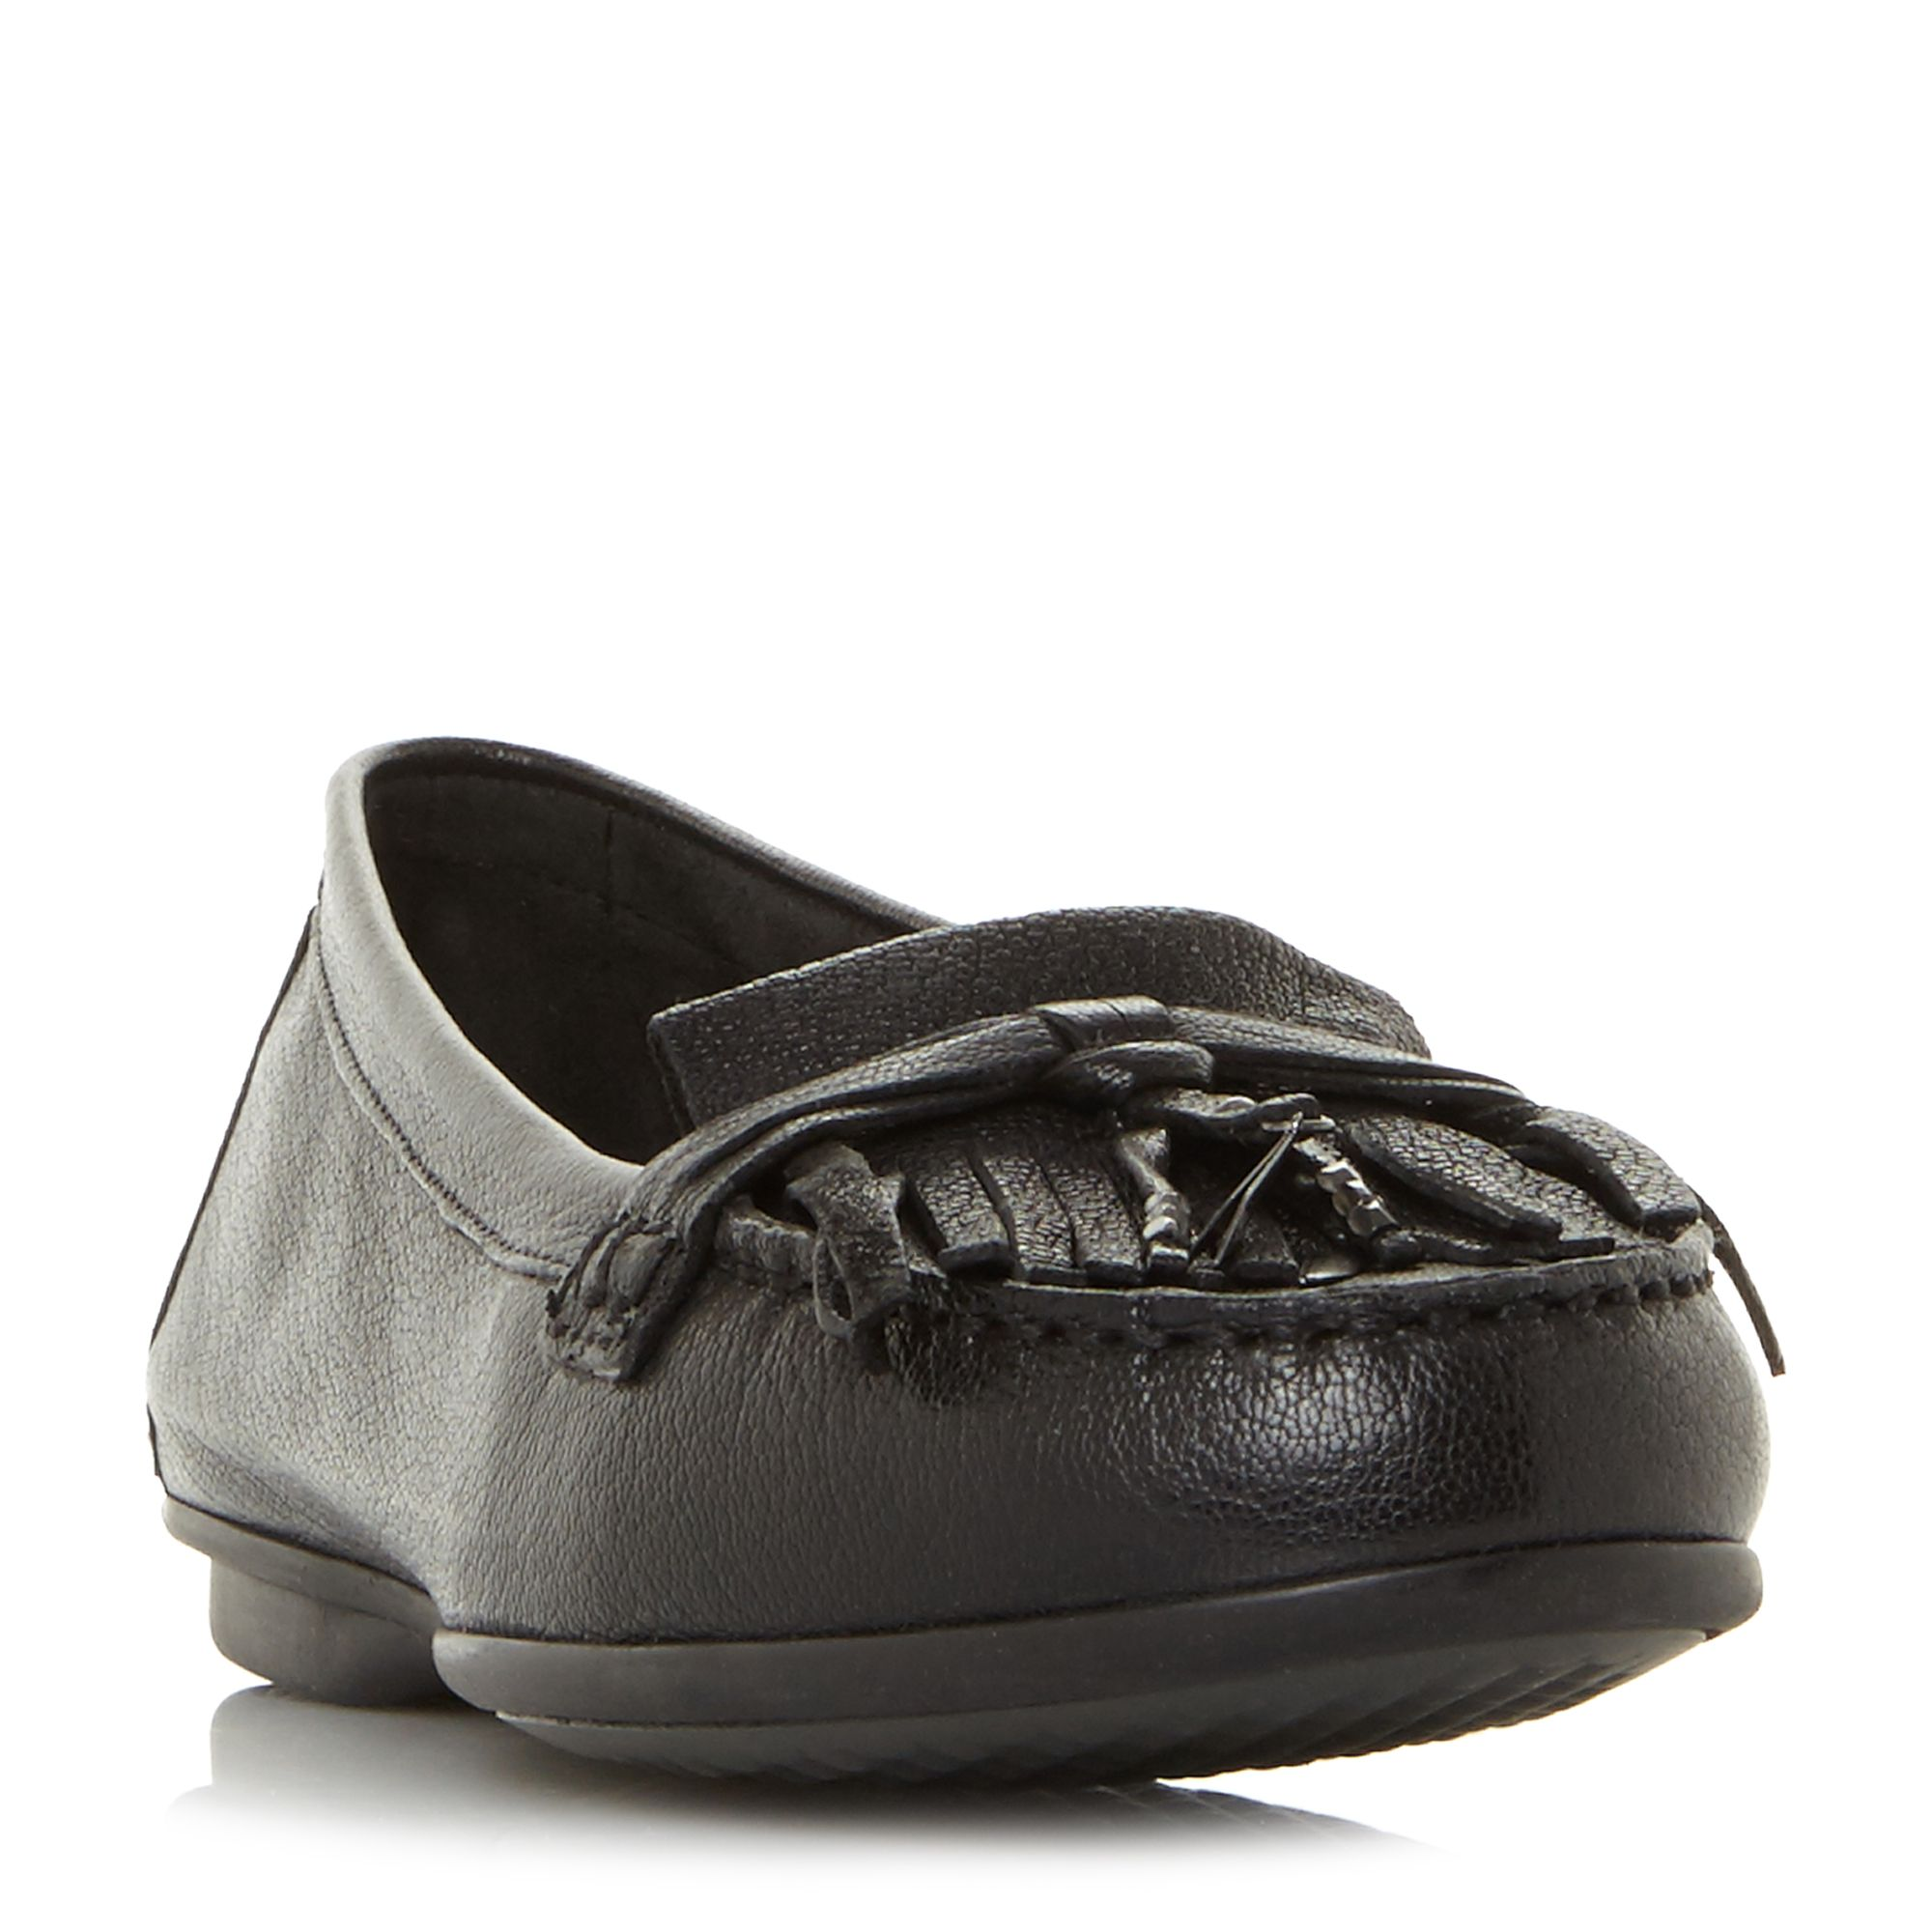 Hush Puppies Naveen Robyn Fringe Tassel Loafer Shoes, Black